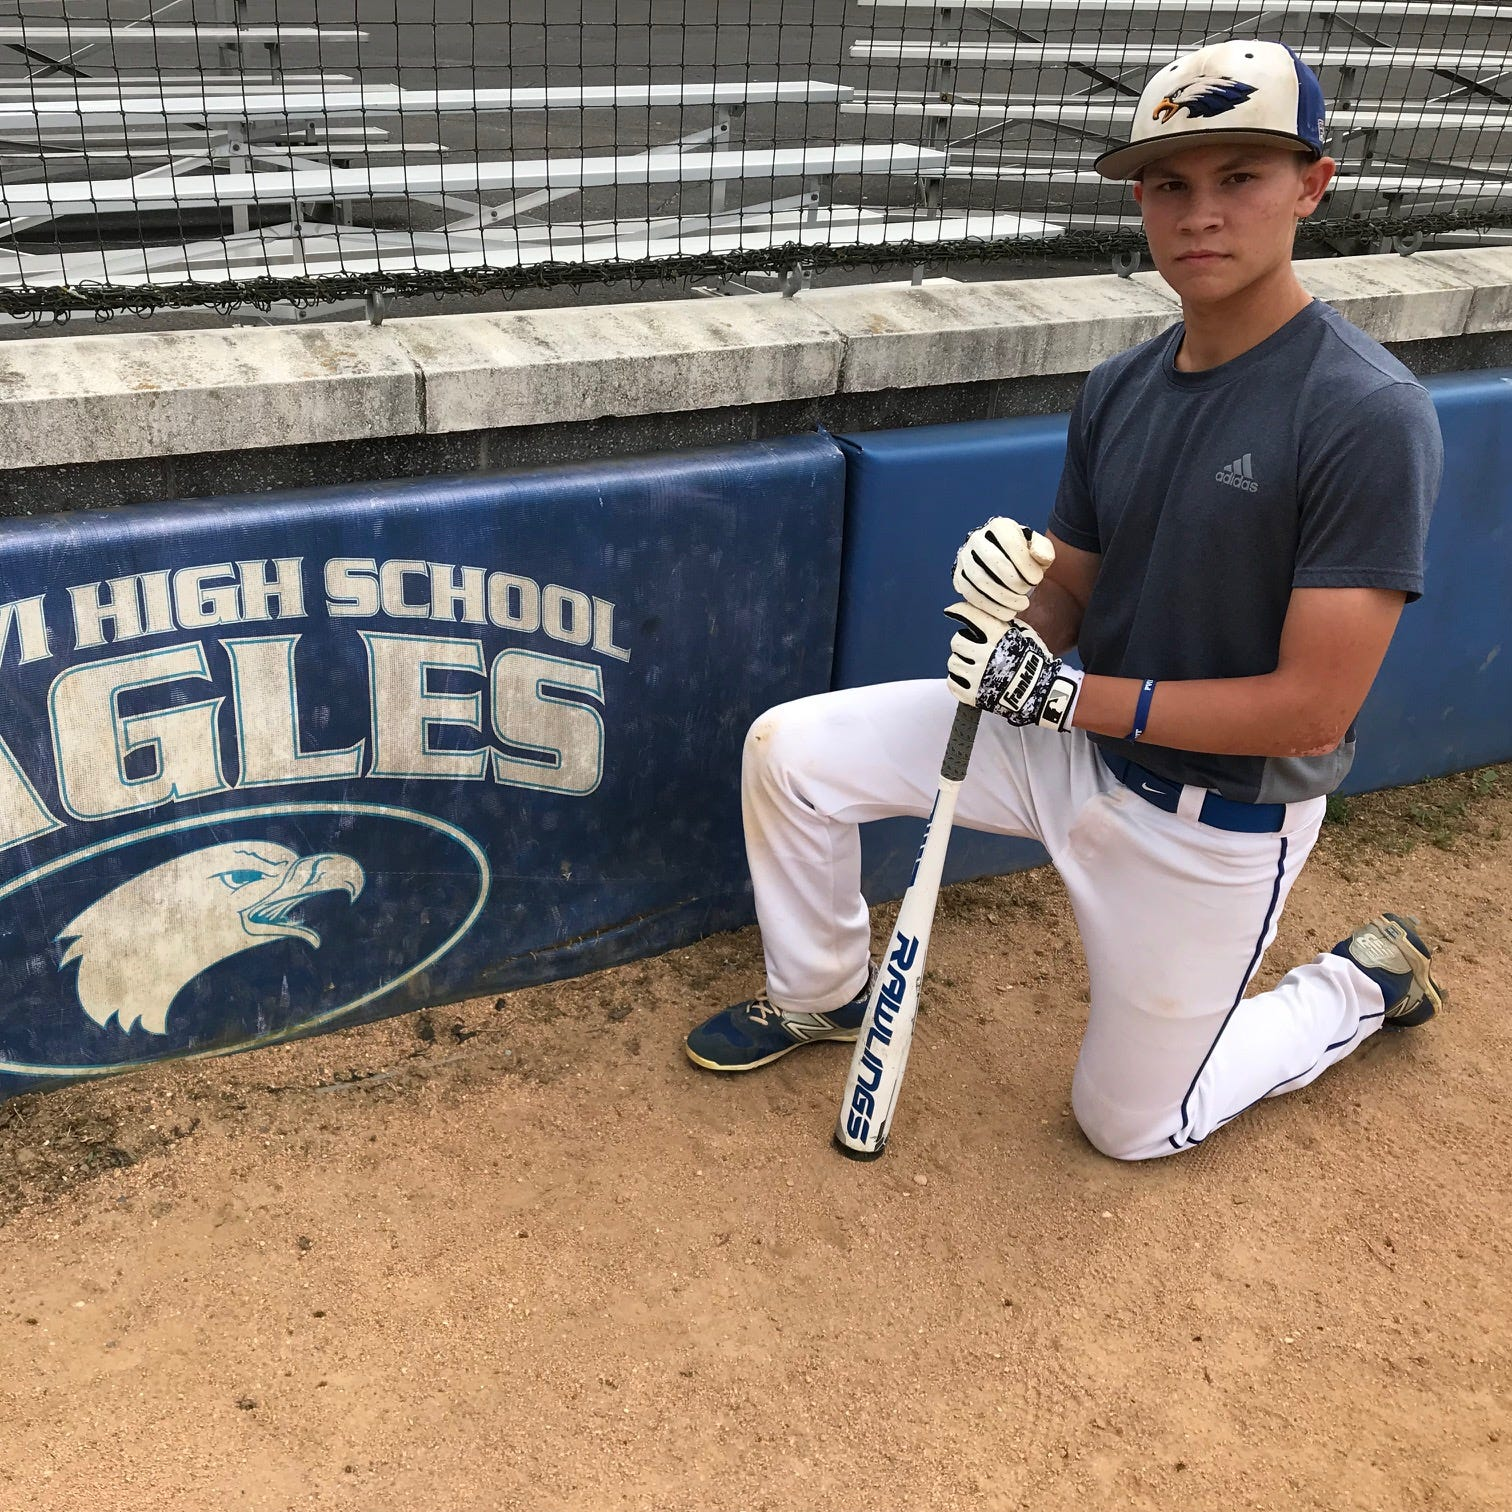 South Jersey baseball: Ryan Donnelly backs up bold claim to propel Paul VI